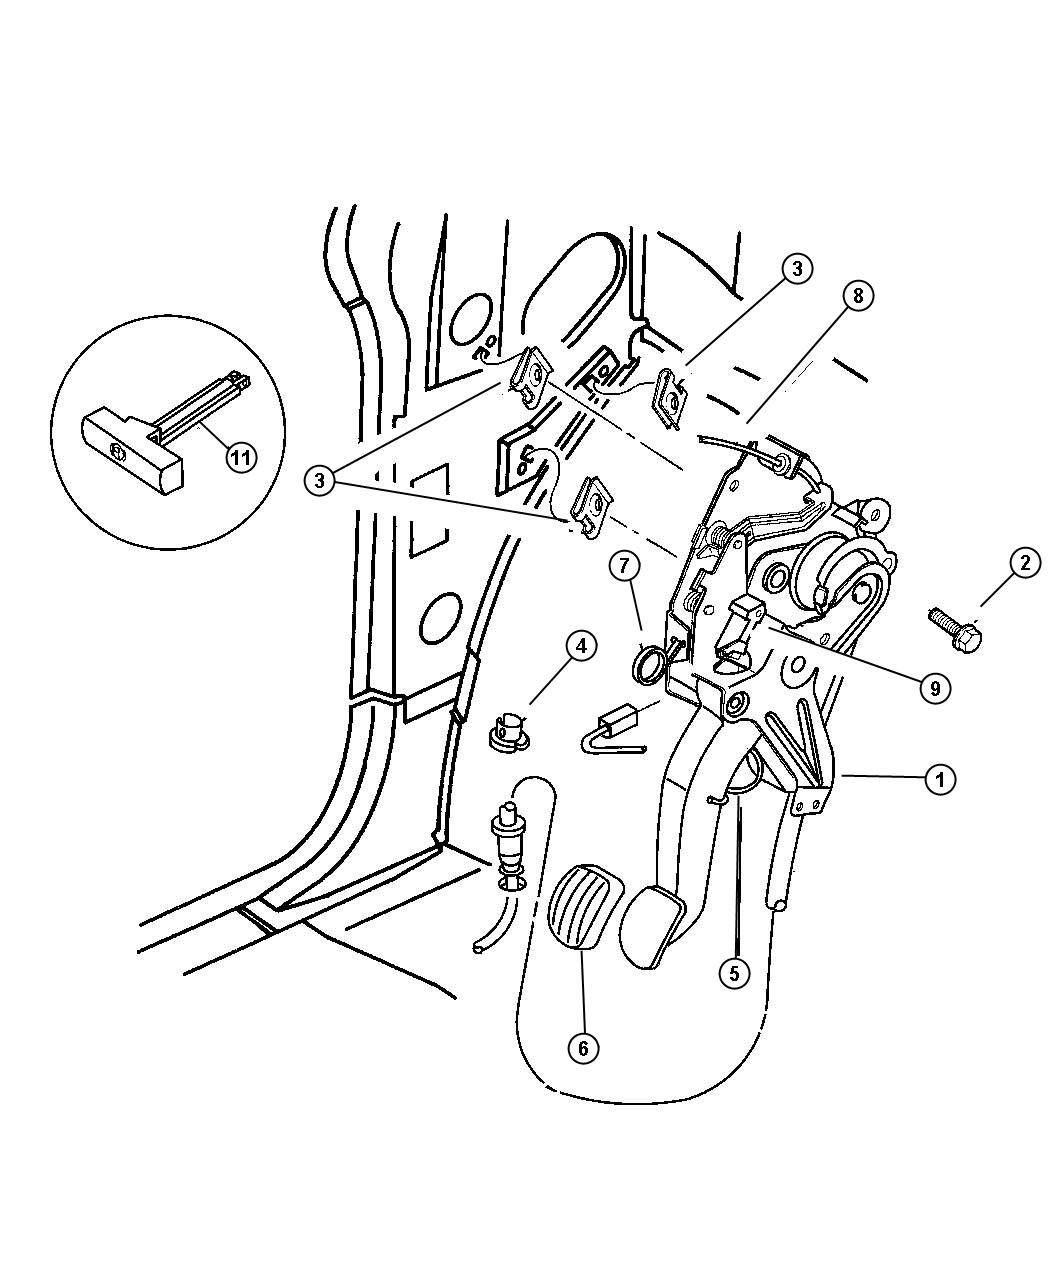 1998 Plymouth Grand Voyager Lever, Parking Brake